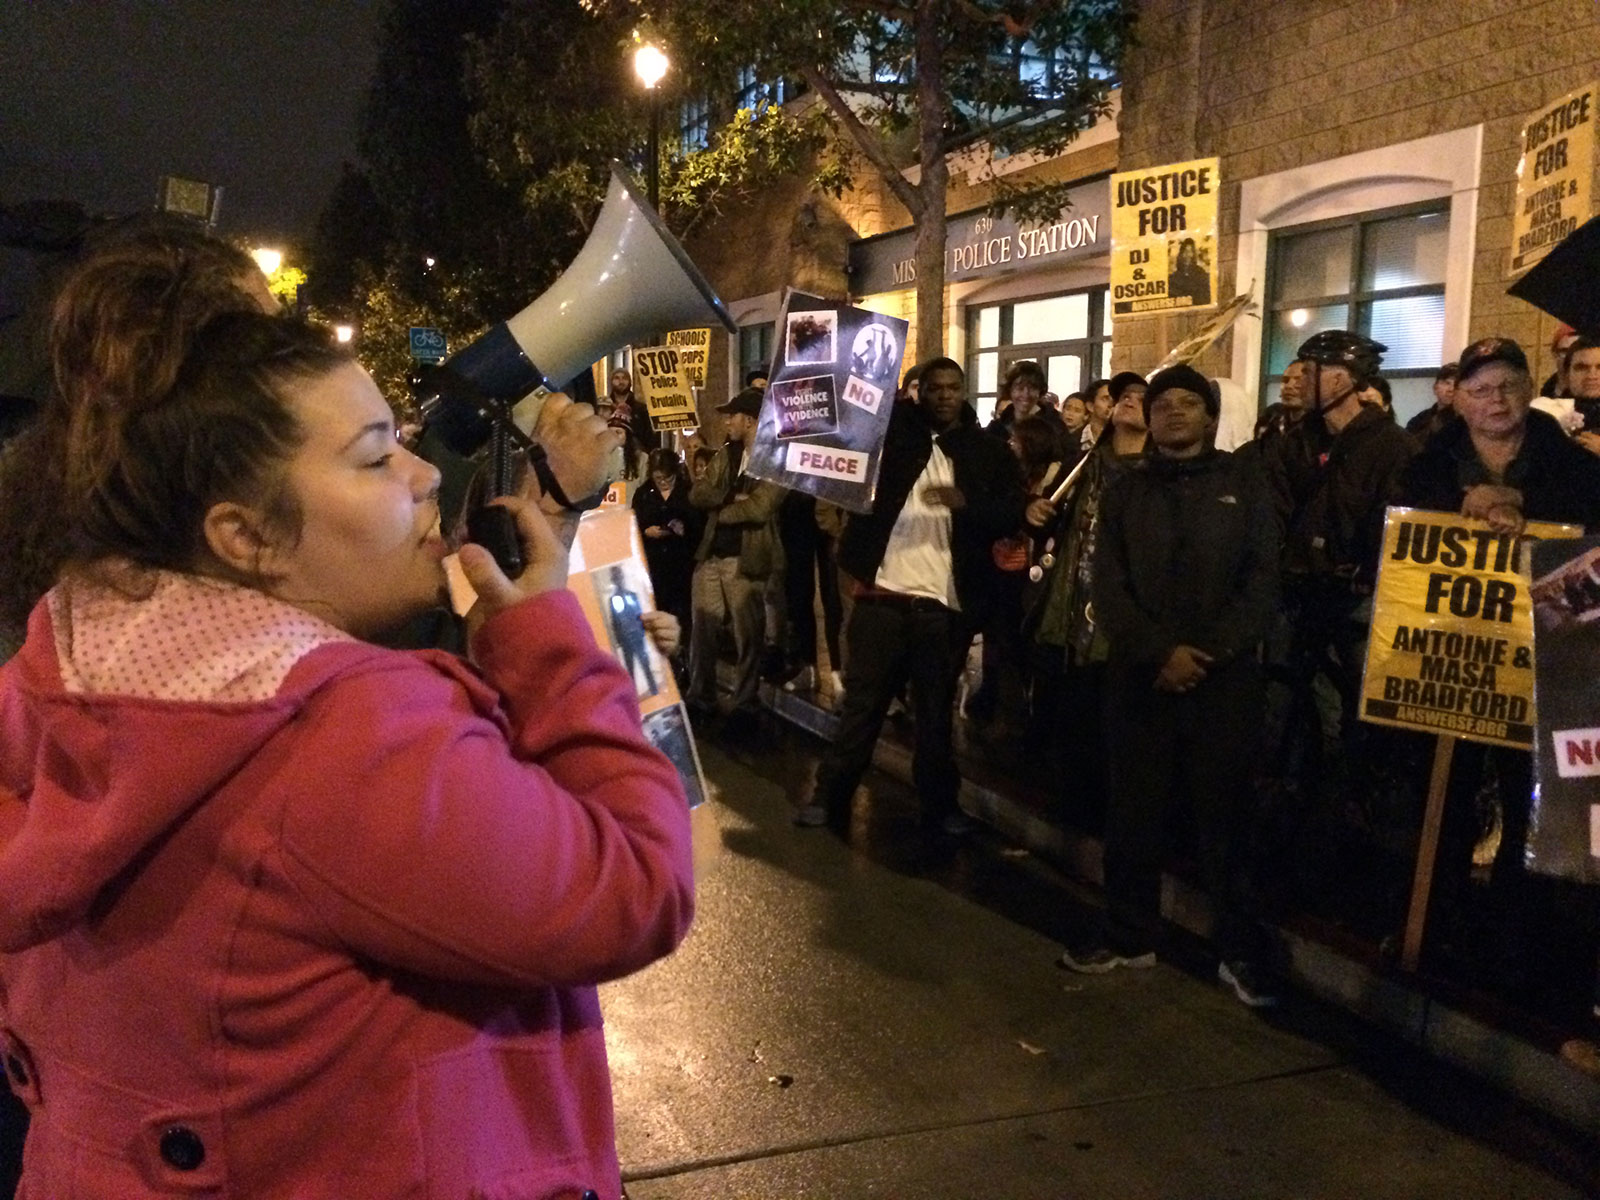 Valencia Gardens Student Beaten By SFPD Suing City